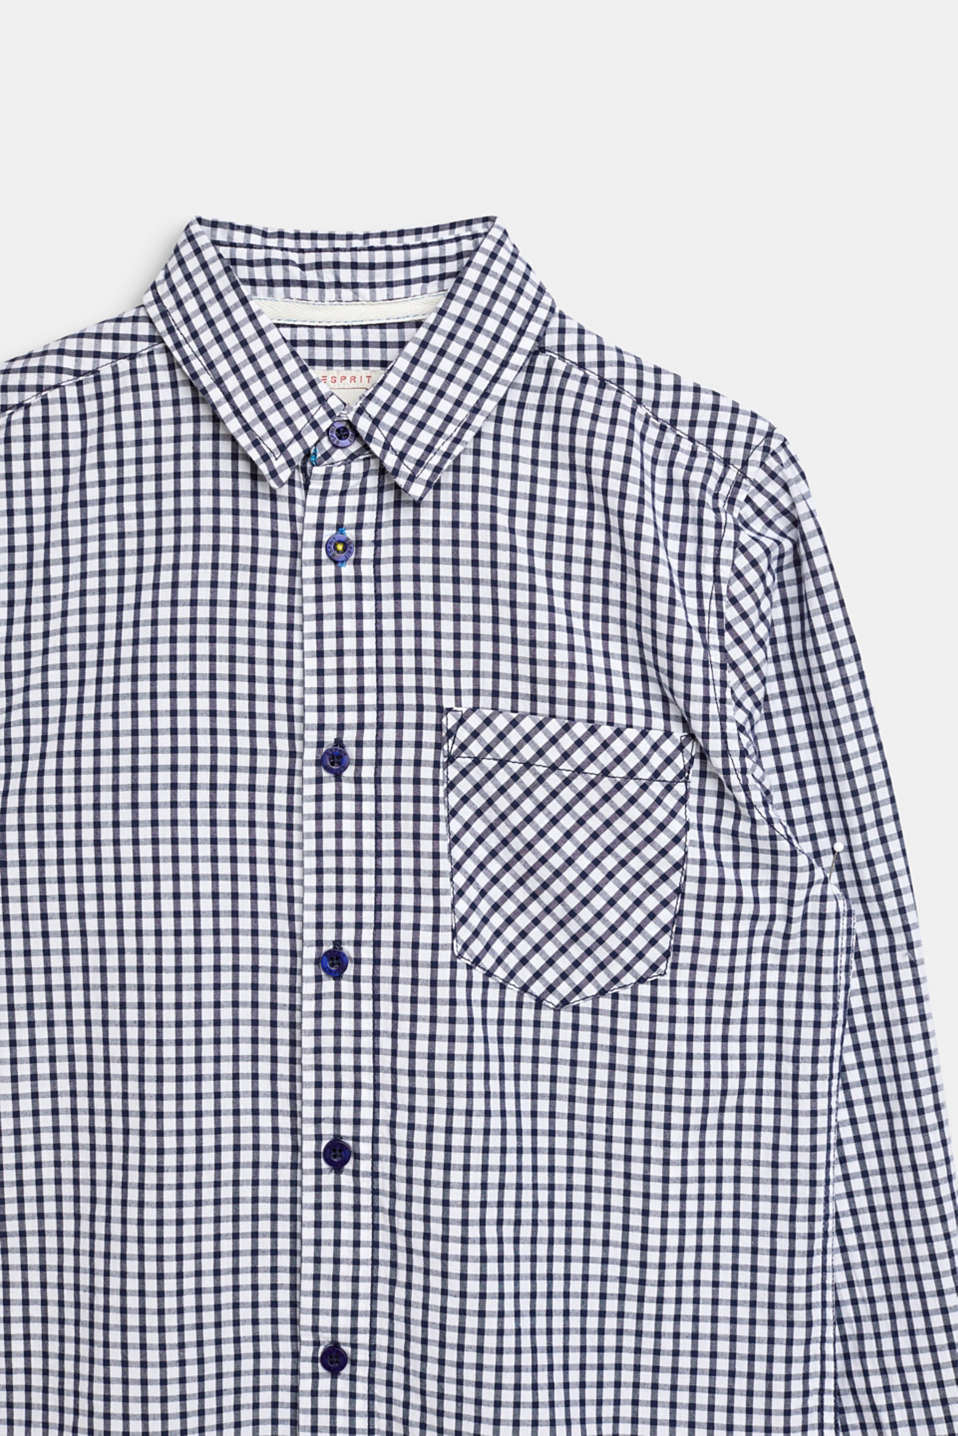 Shirt with a check pattern, 100% cotton, LCNAVY, detail image number 2